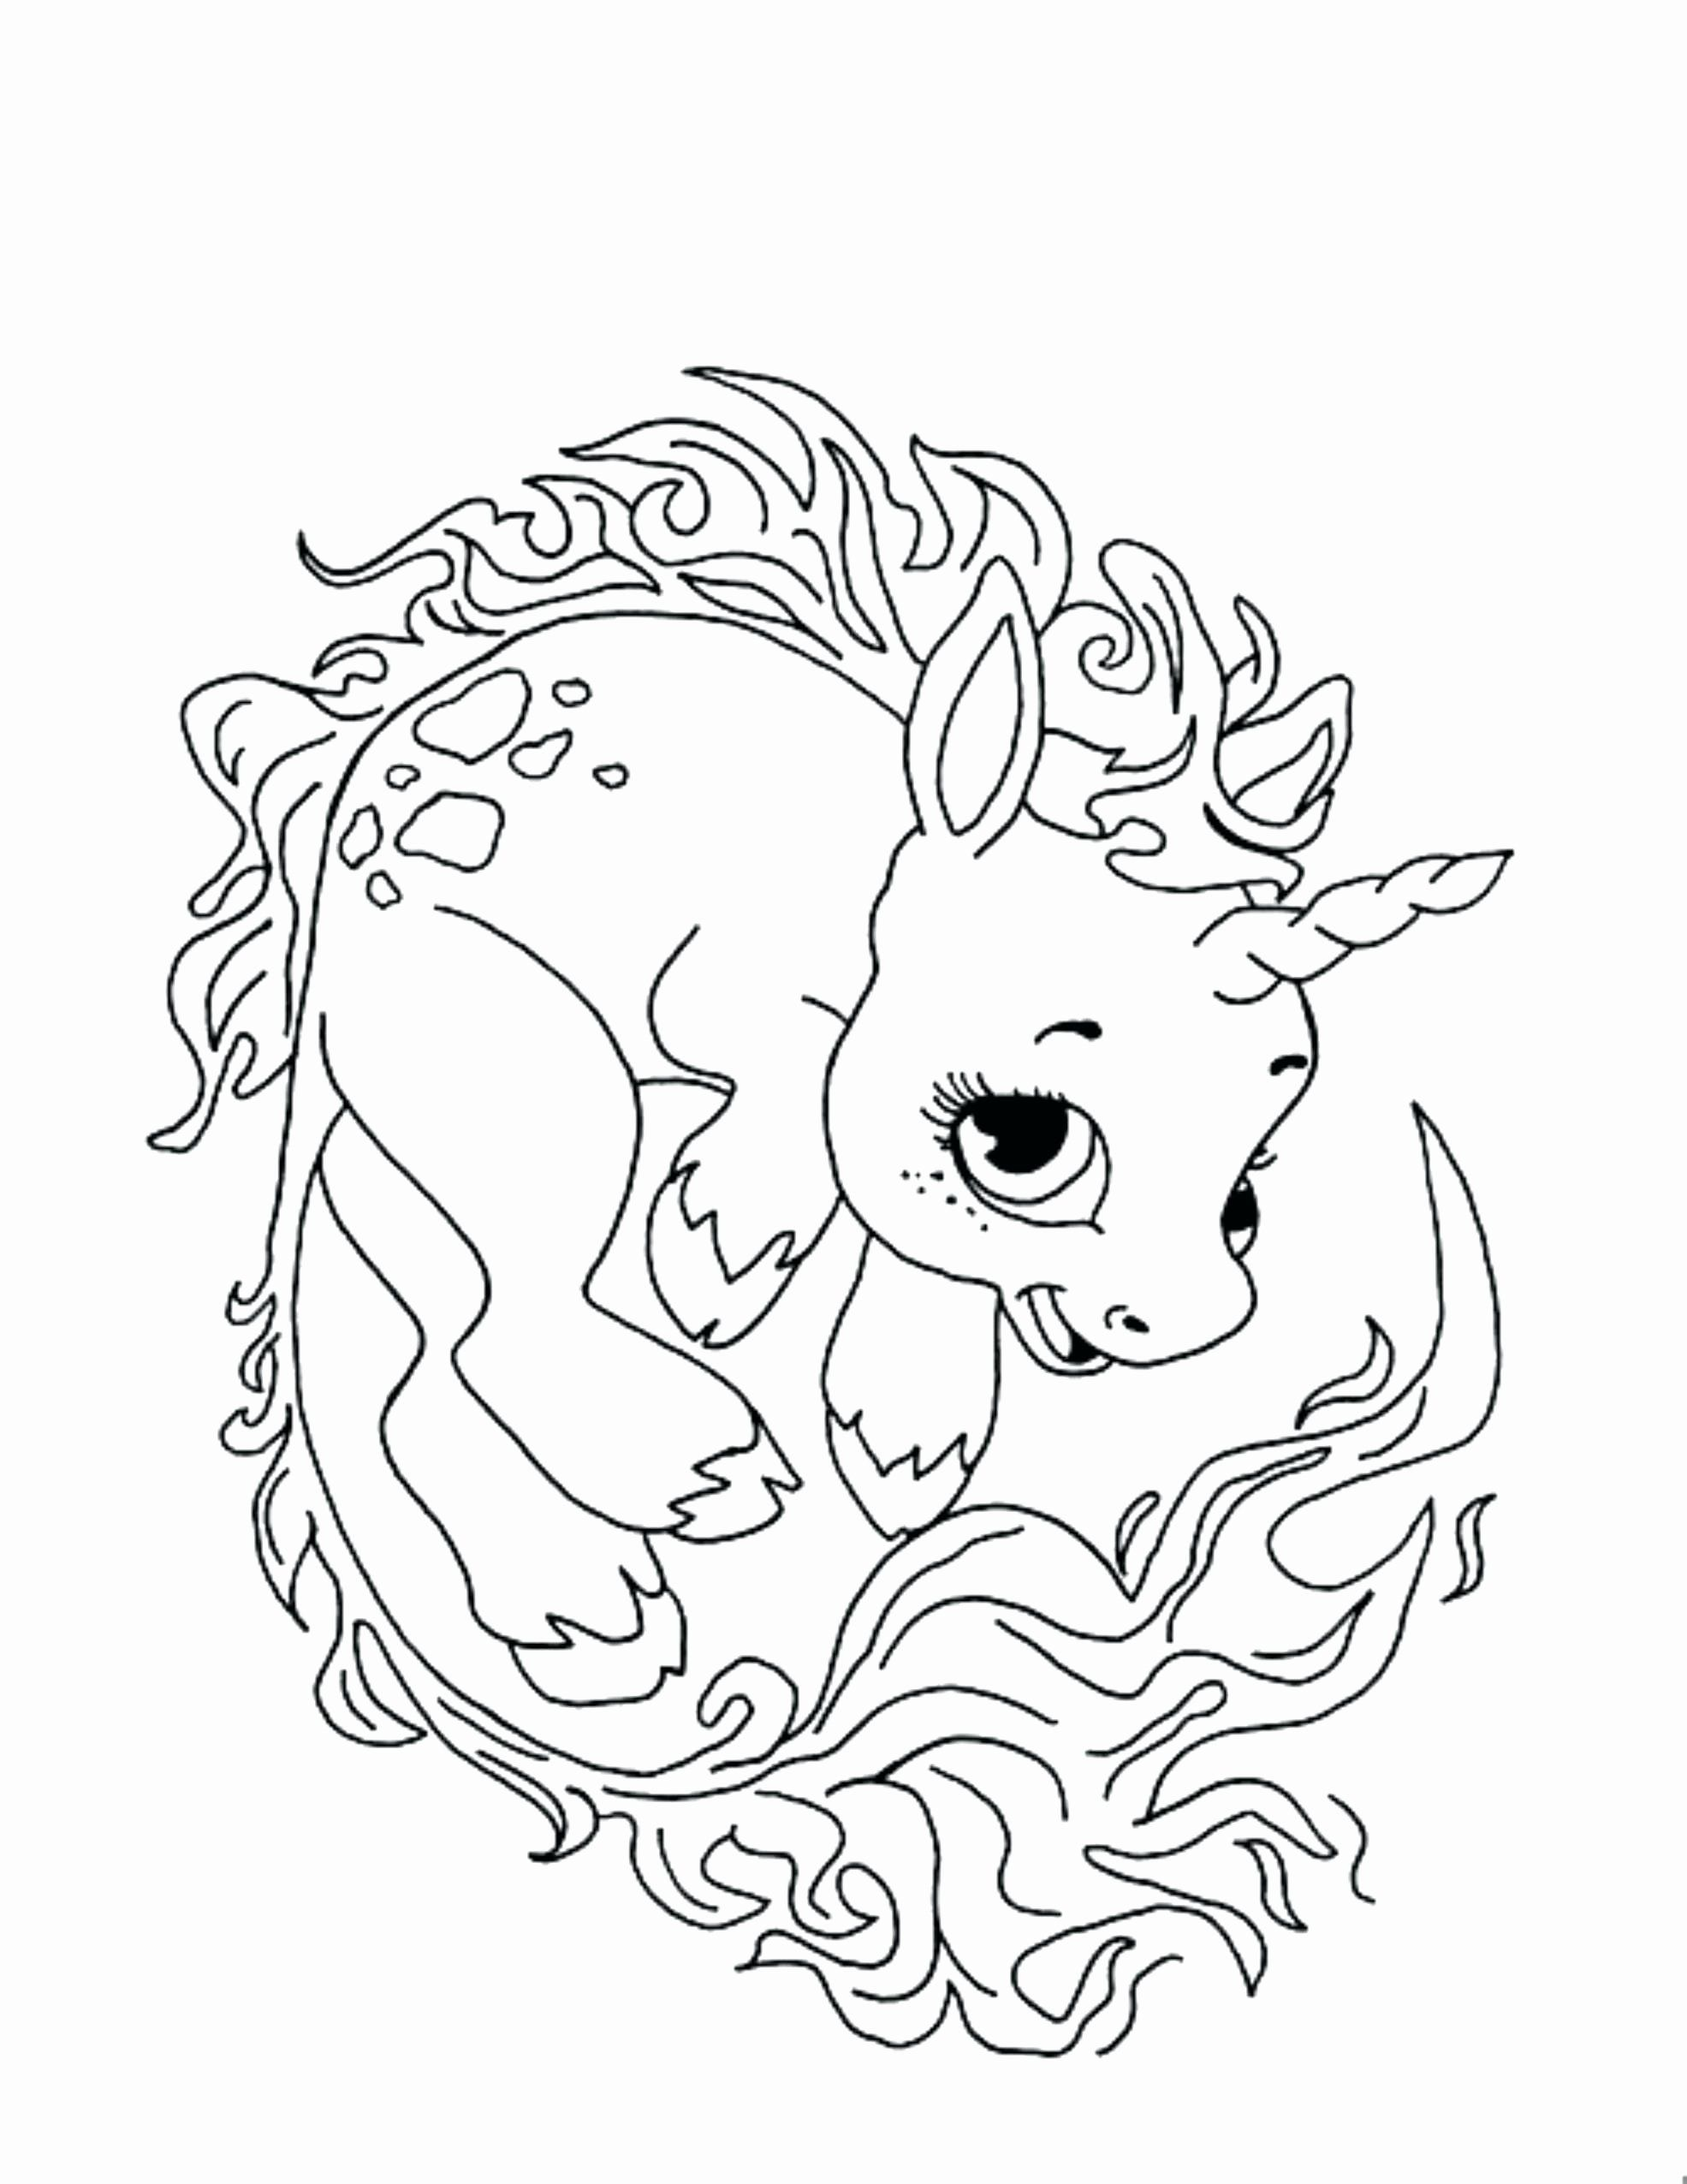 Cute Starbucks Coloring Pages